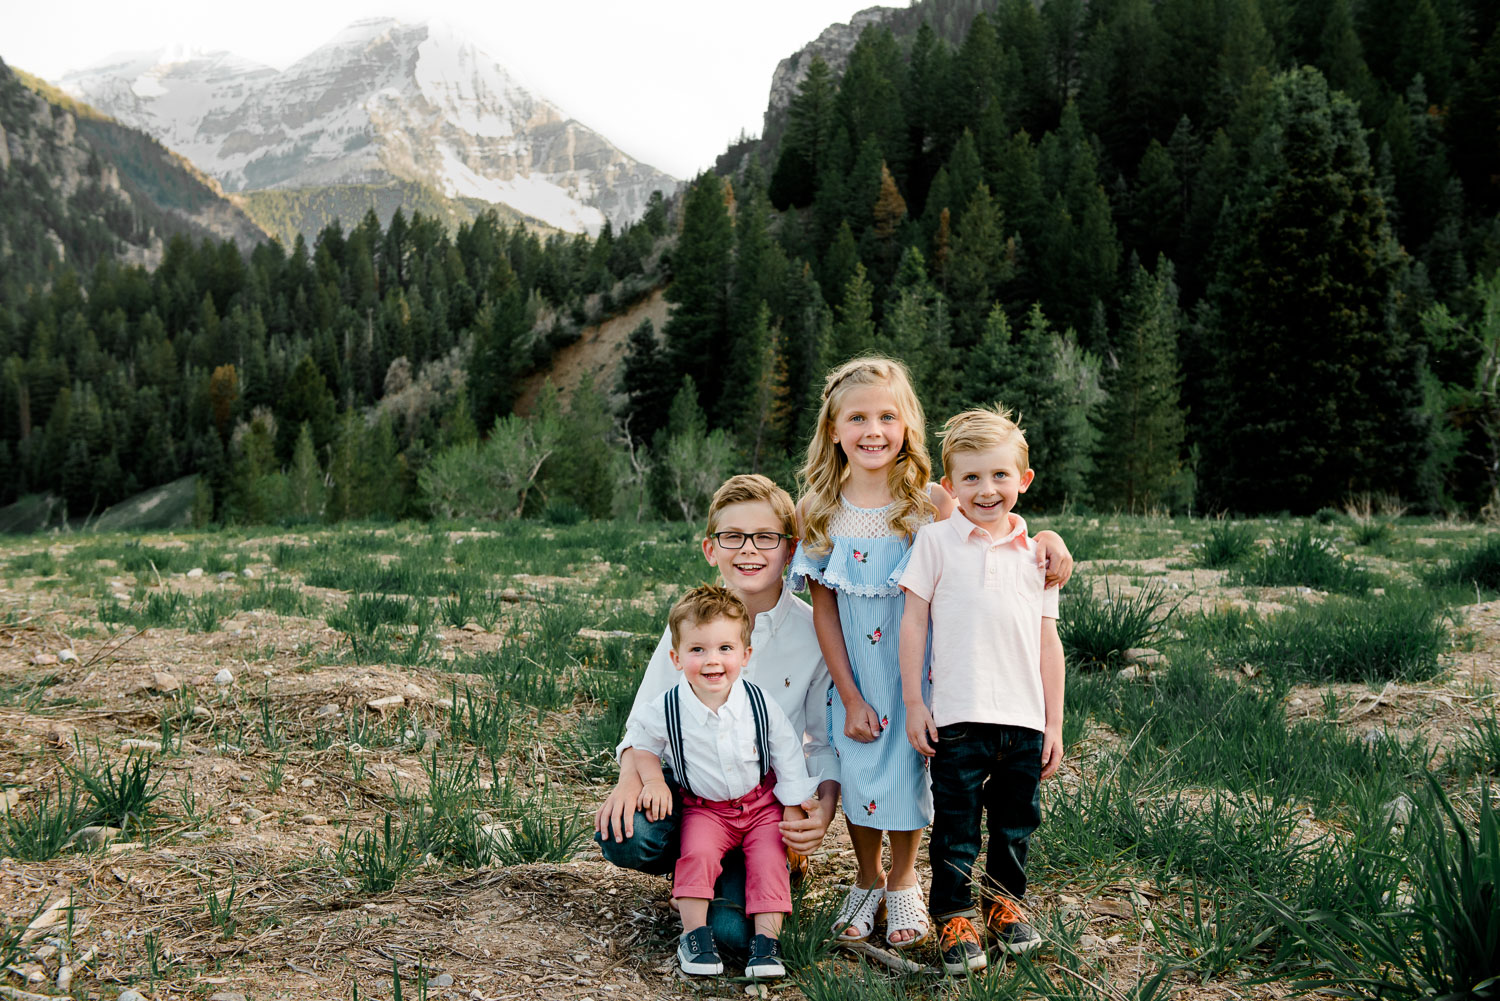 four_kids_pictures_cfairchildphotography.jpg